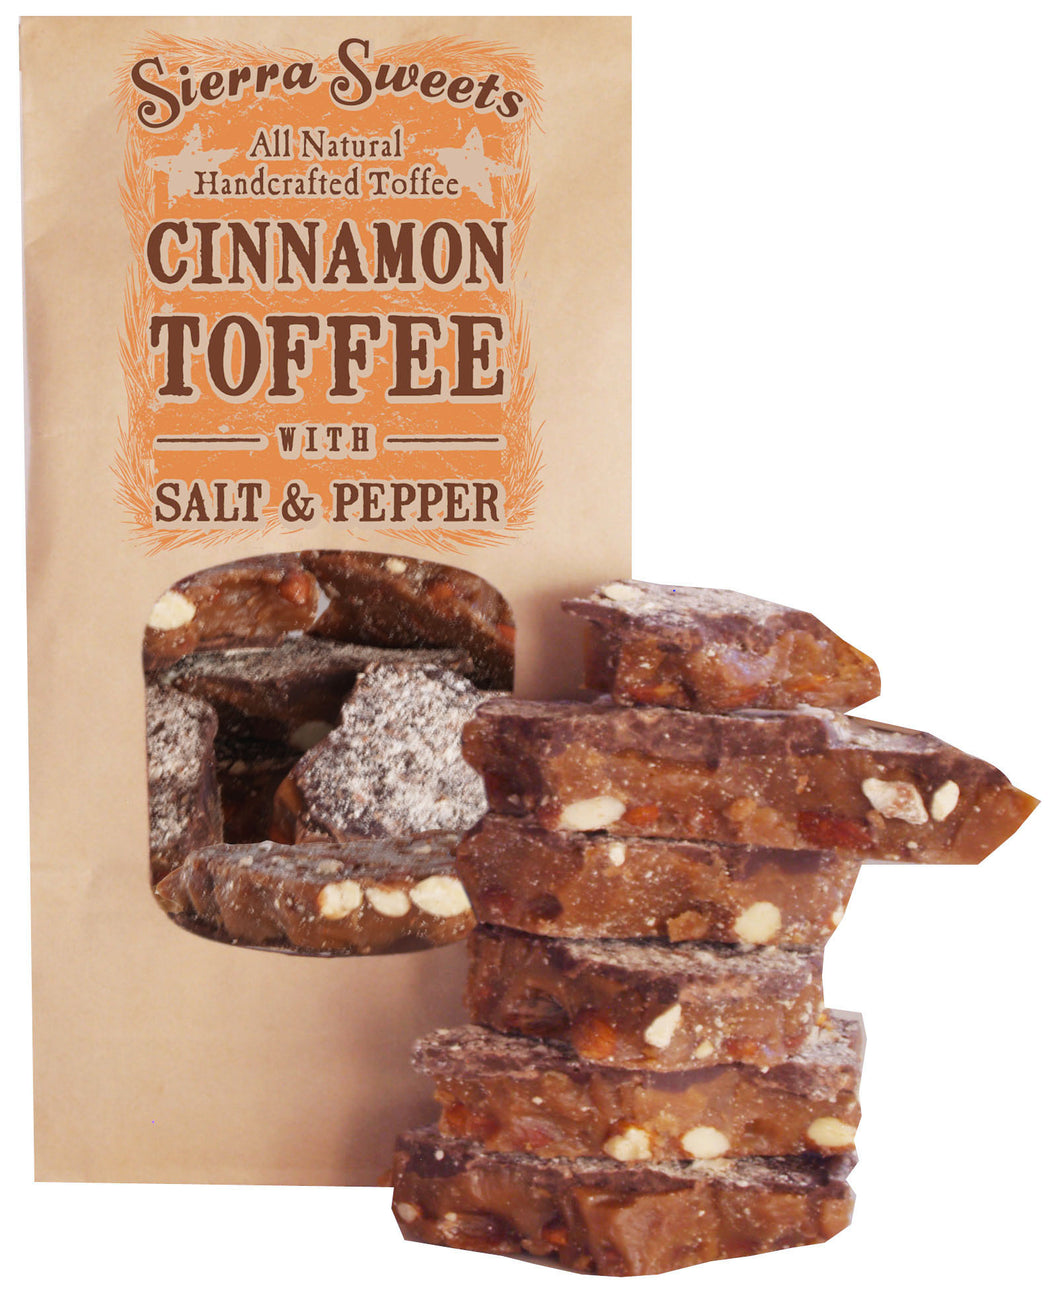 - CINNAMON TOFFEE WITH SALT & PEPPER